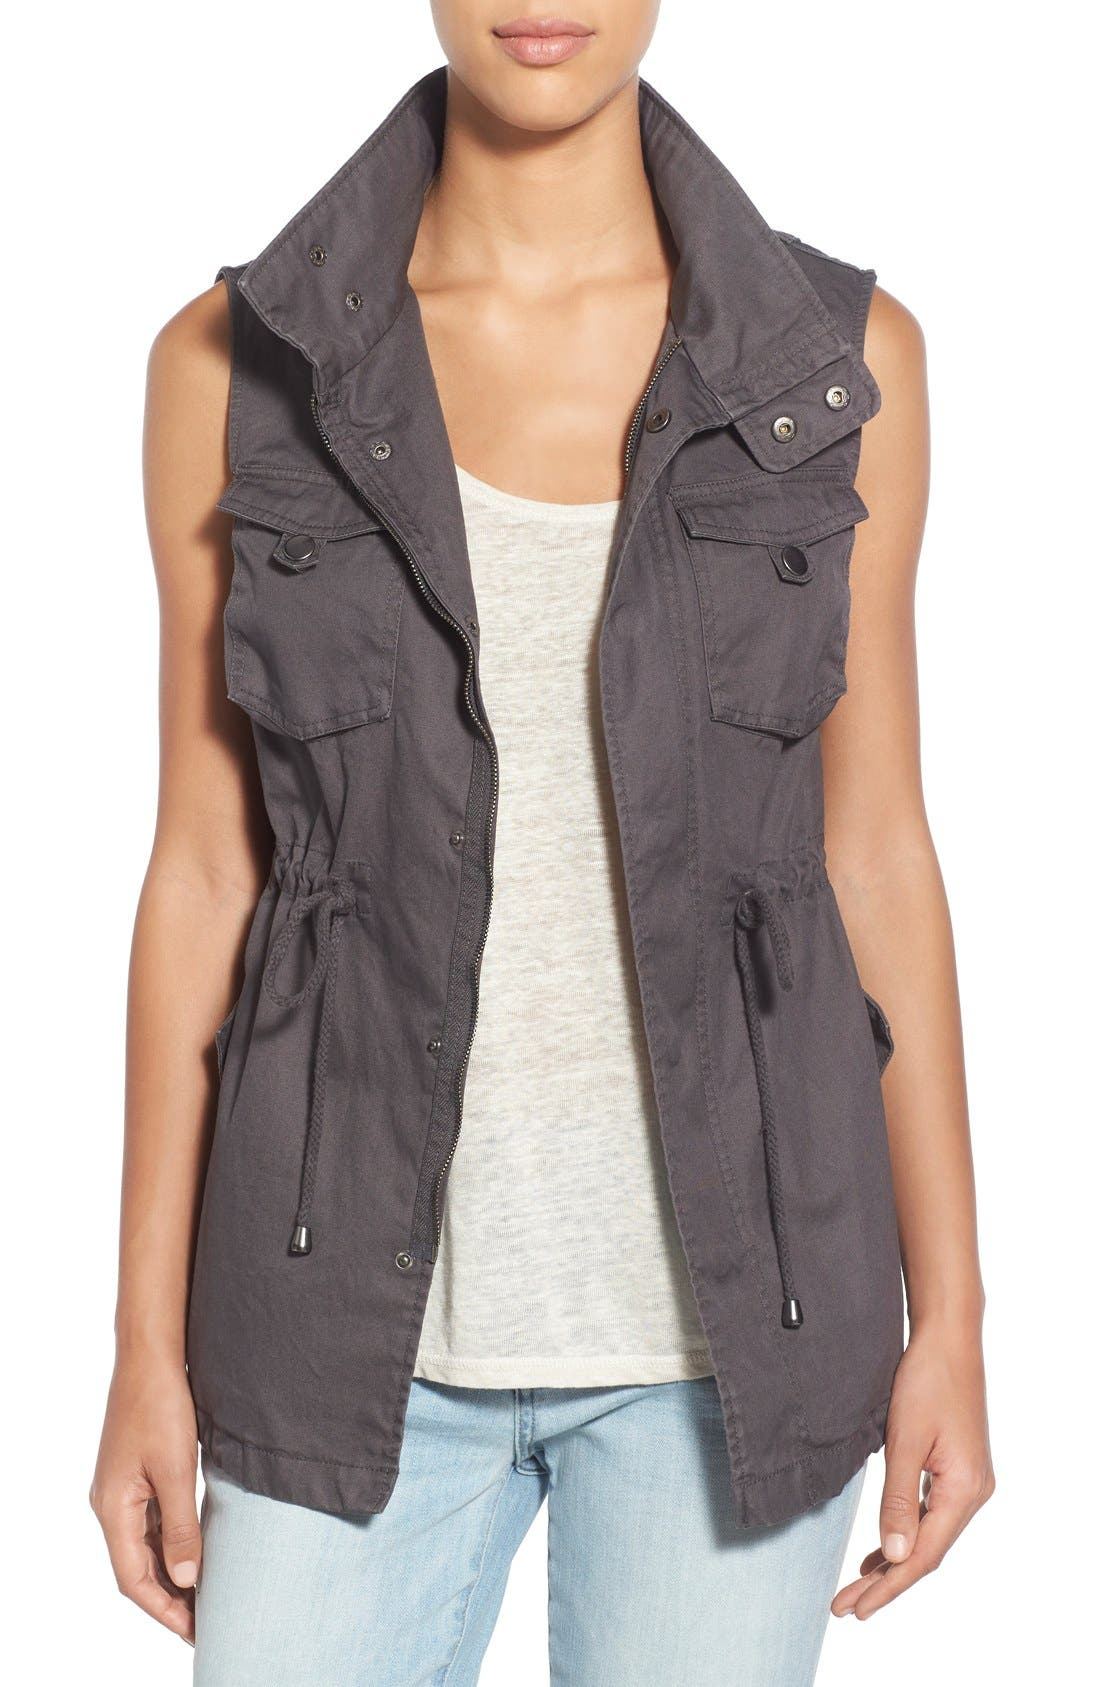 Alternate Image 1 Selected - Pleione Cotton Twill Military Vest (Regular & Petite)